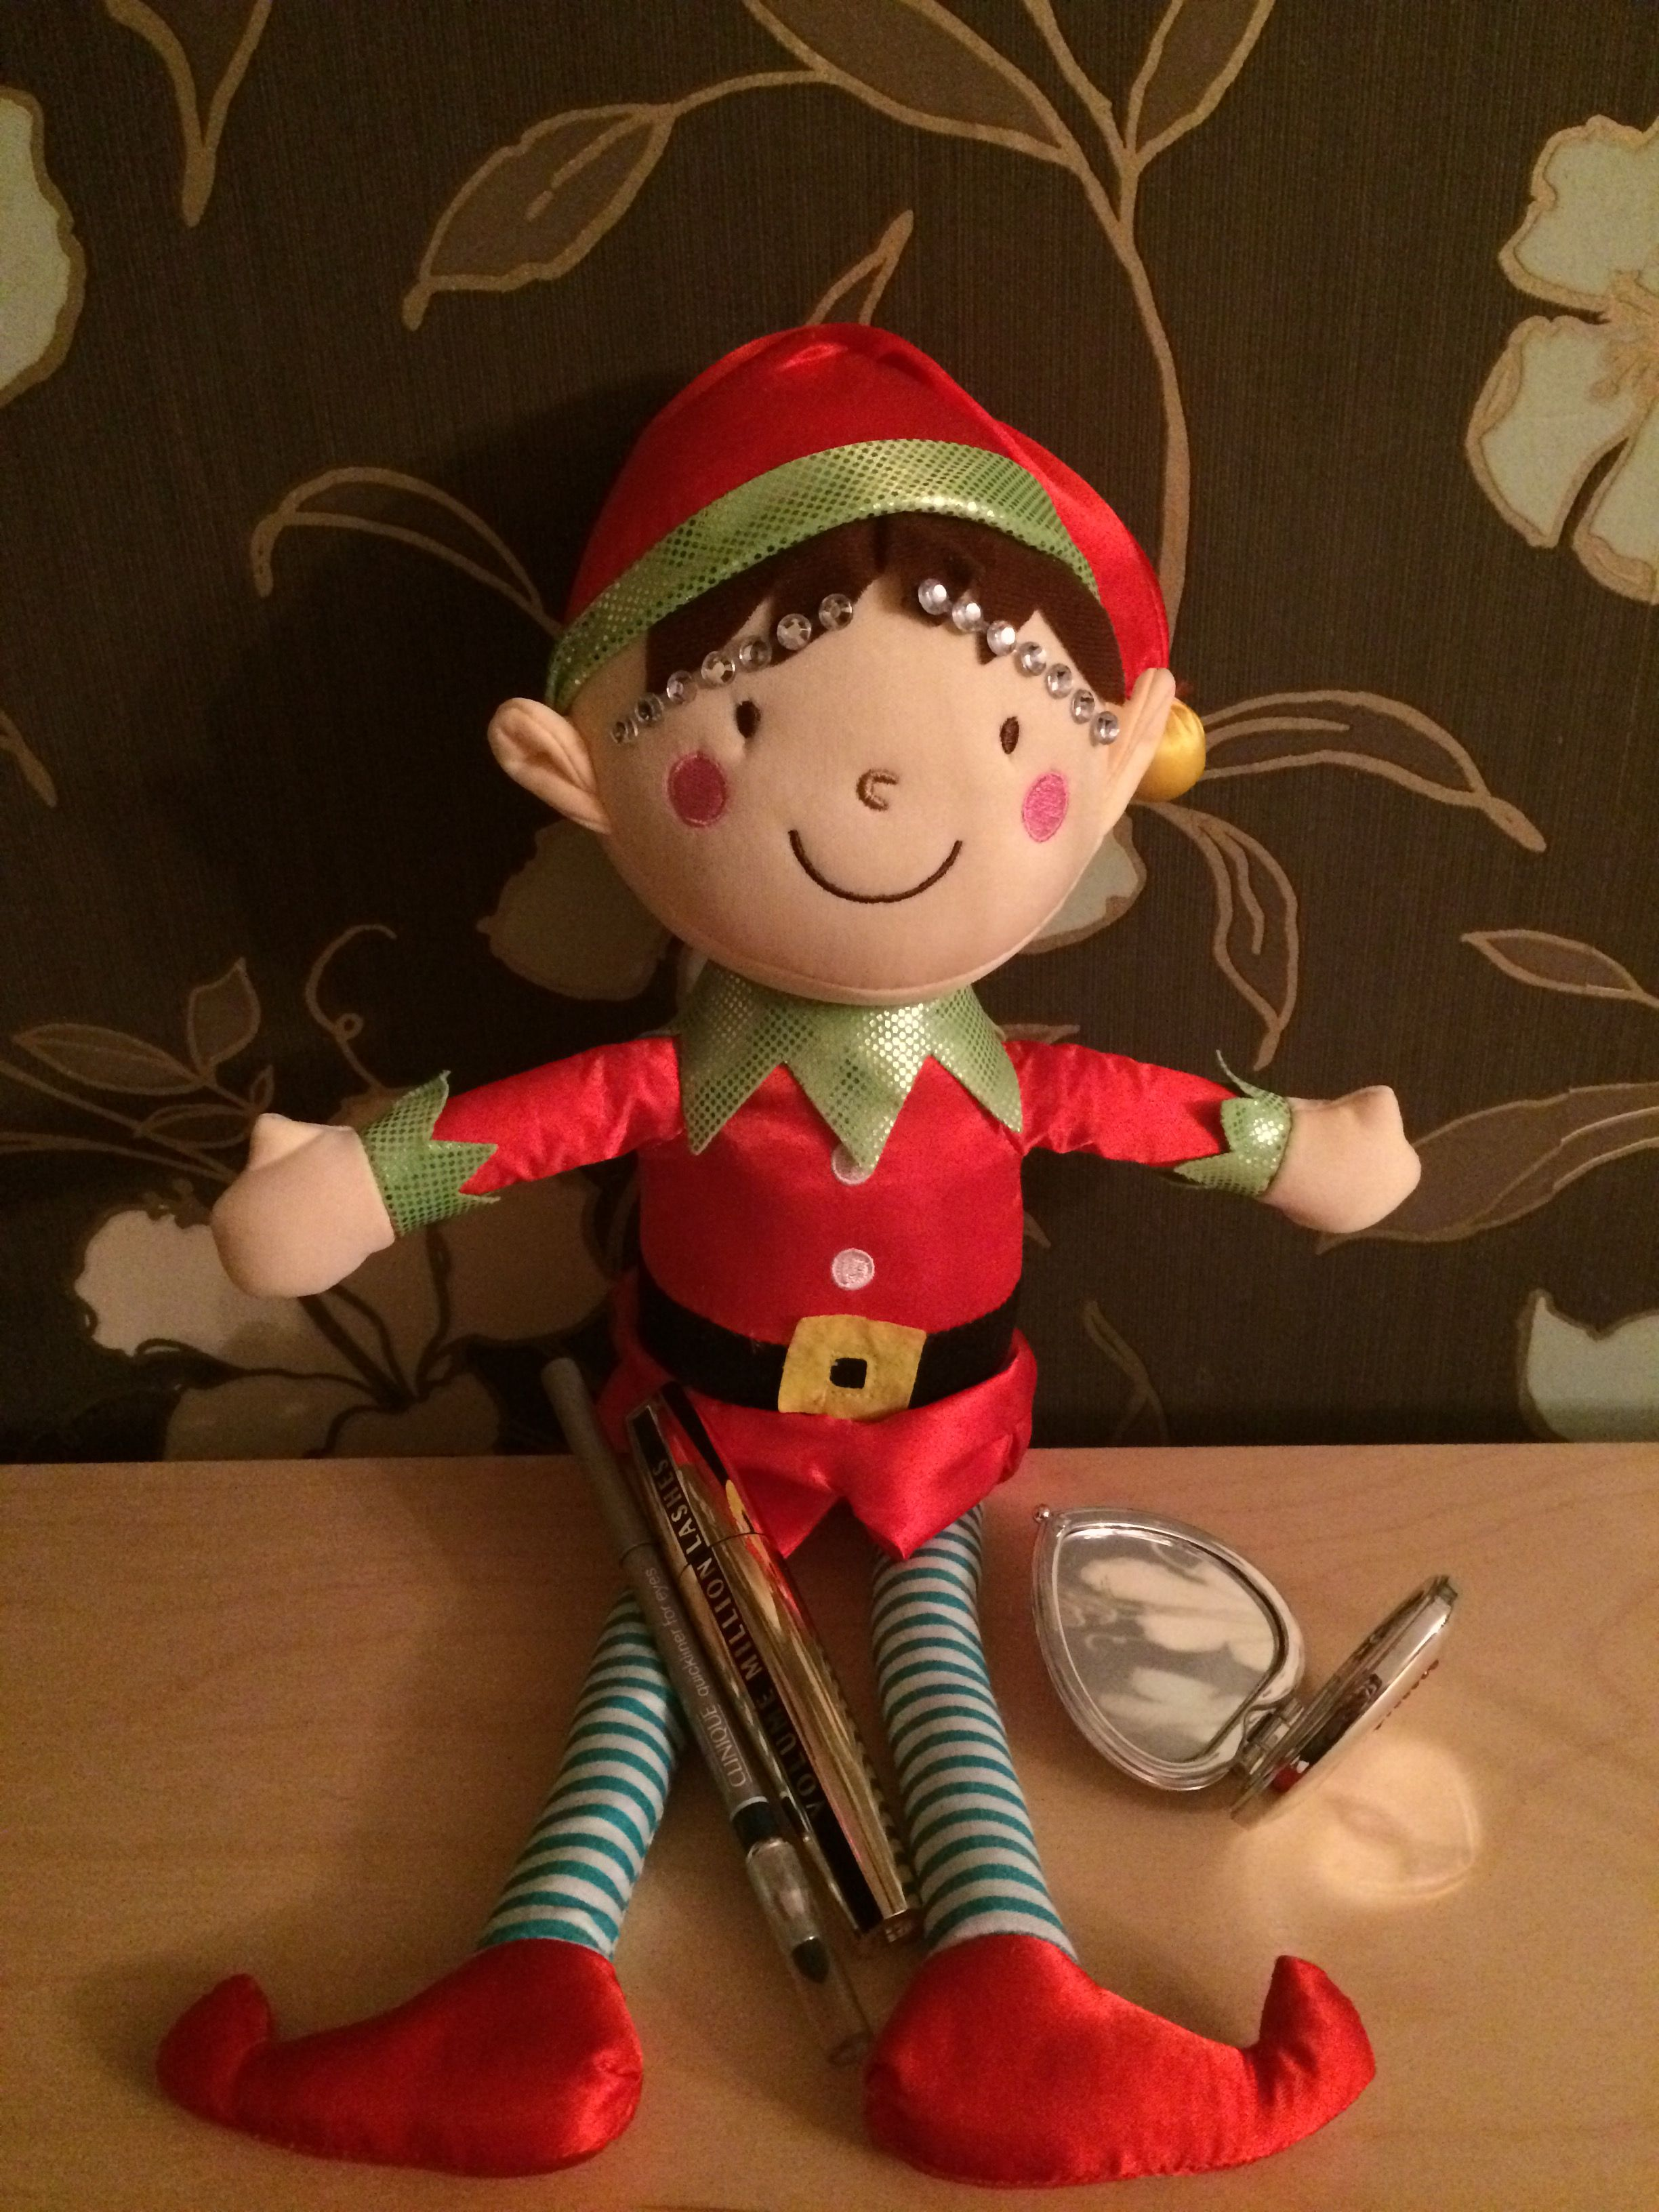 Haha someone mentioned eyebrows and look what Our Naughty Elf has only gone and done Bling Brows for Christmas 🎅🏼 December 2016